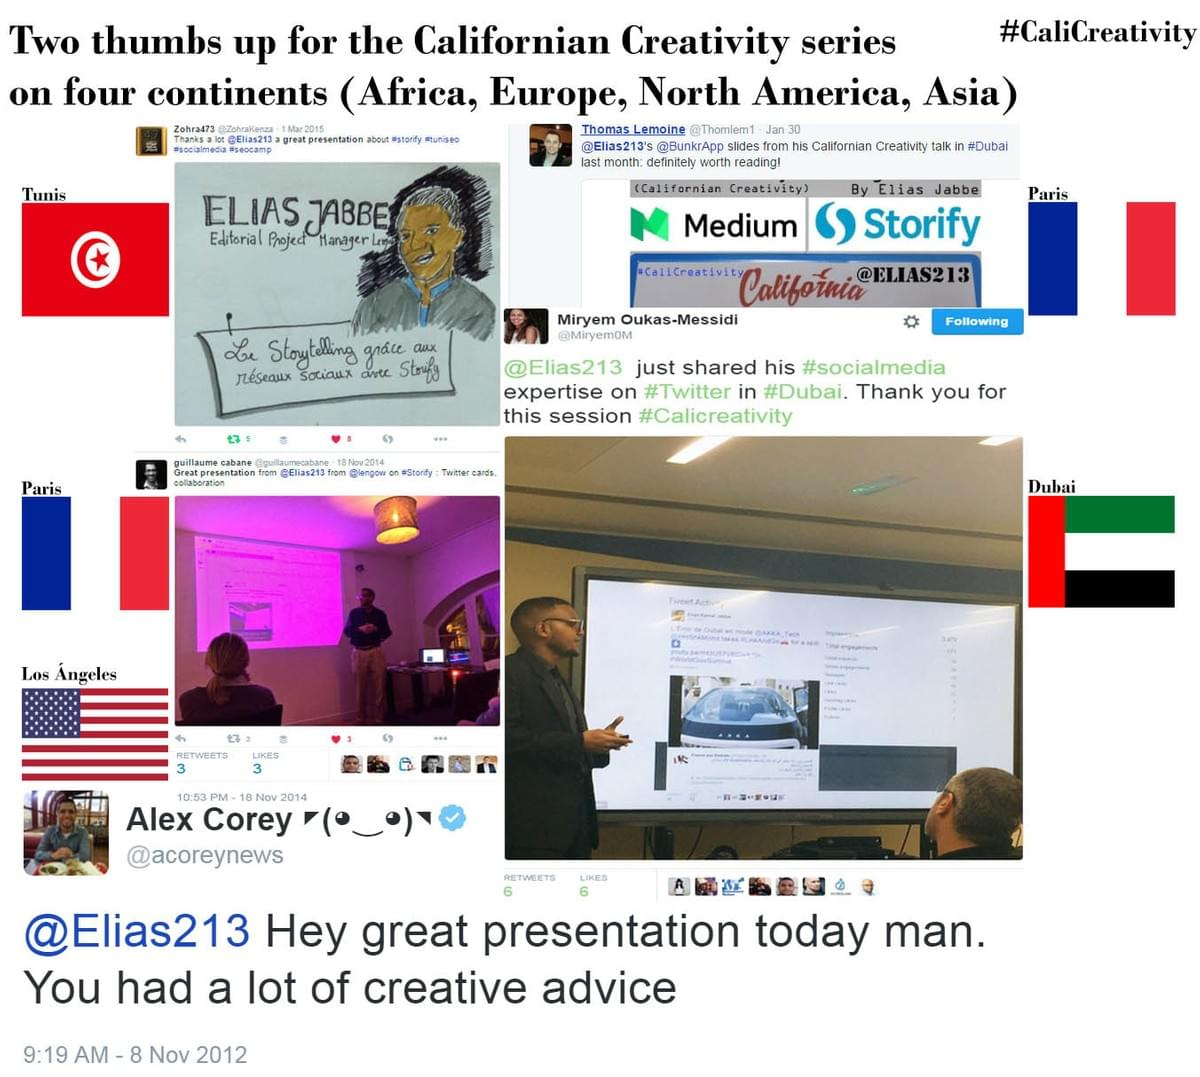 Elias213.com photo of Elías Jabbe Californian Creativity marketing presentations in four continents (Africa- Tunis, Tunisia,  Europe- Paris, France, North America- Los Ángeles, California, USA and Asia- Dubai, United Arab Emirates) #CaliCreativity